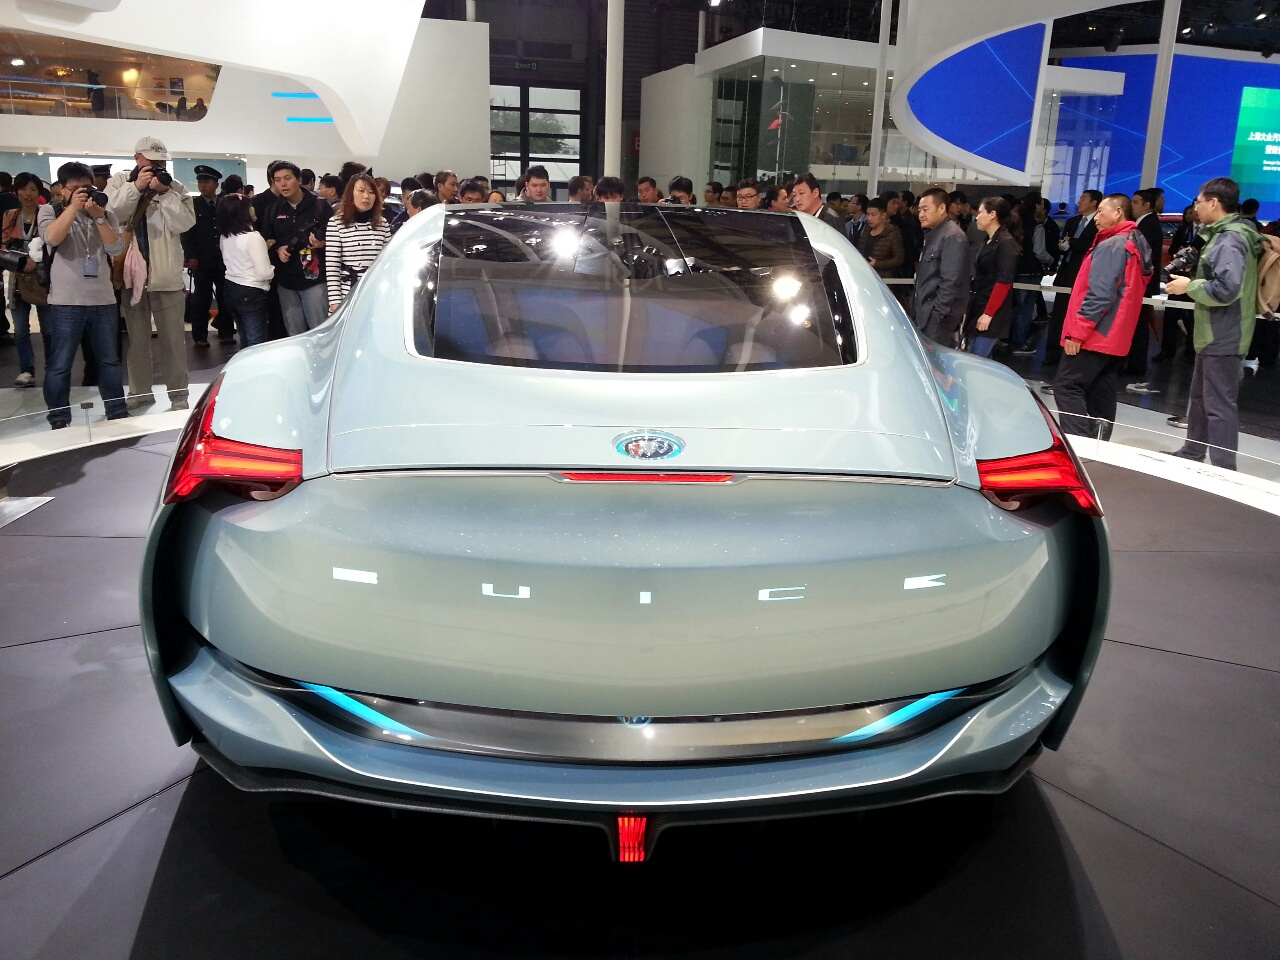 Buick Riviera rear at the 2013 Auto Shanghai